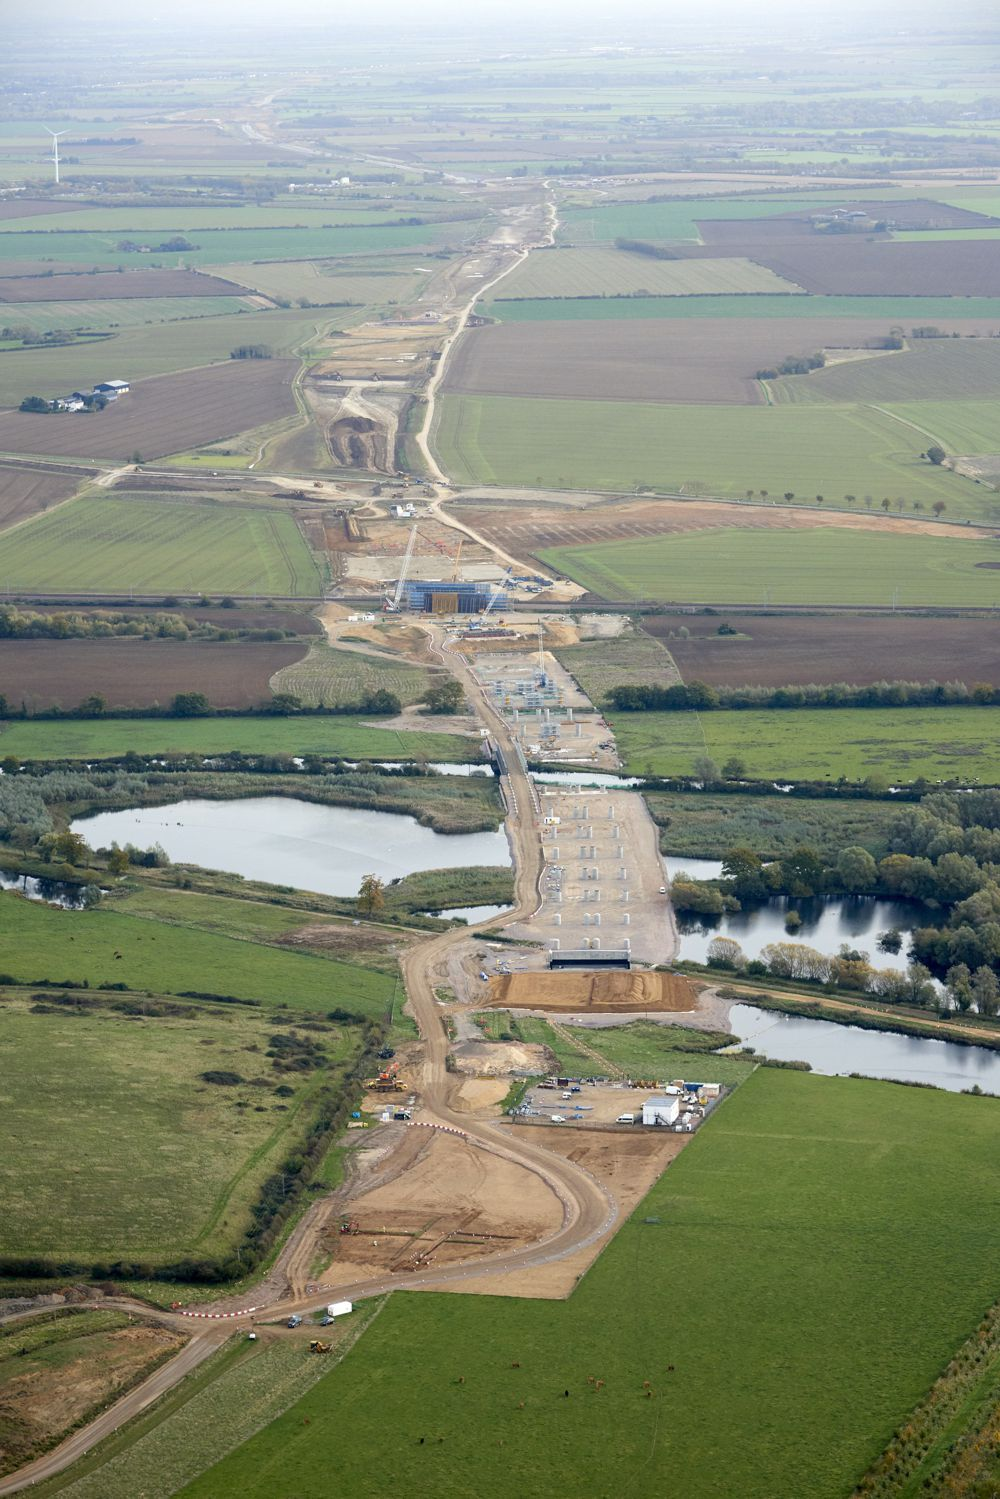 East of England: Three sites for the A14 Cambridge to Huntingdon road scheme (Swavesey, Brampton and Ermine Street – A1198 near Godmanchester) – A14 project talk, guided bus site tour and Q & A session.